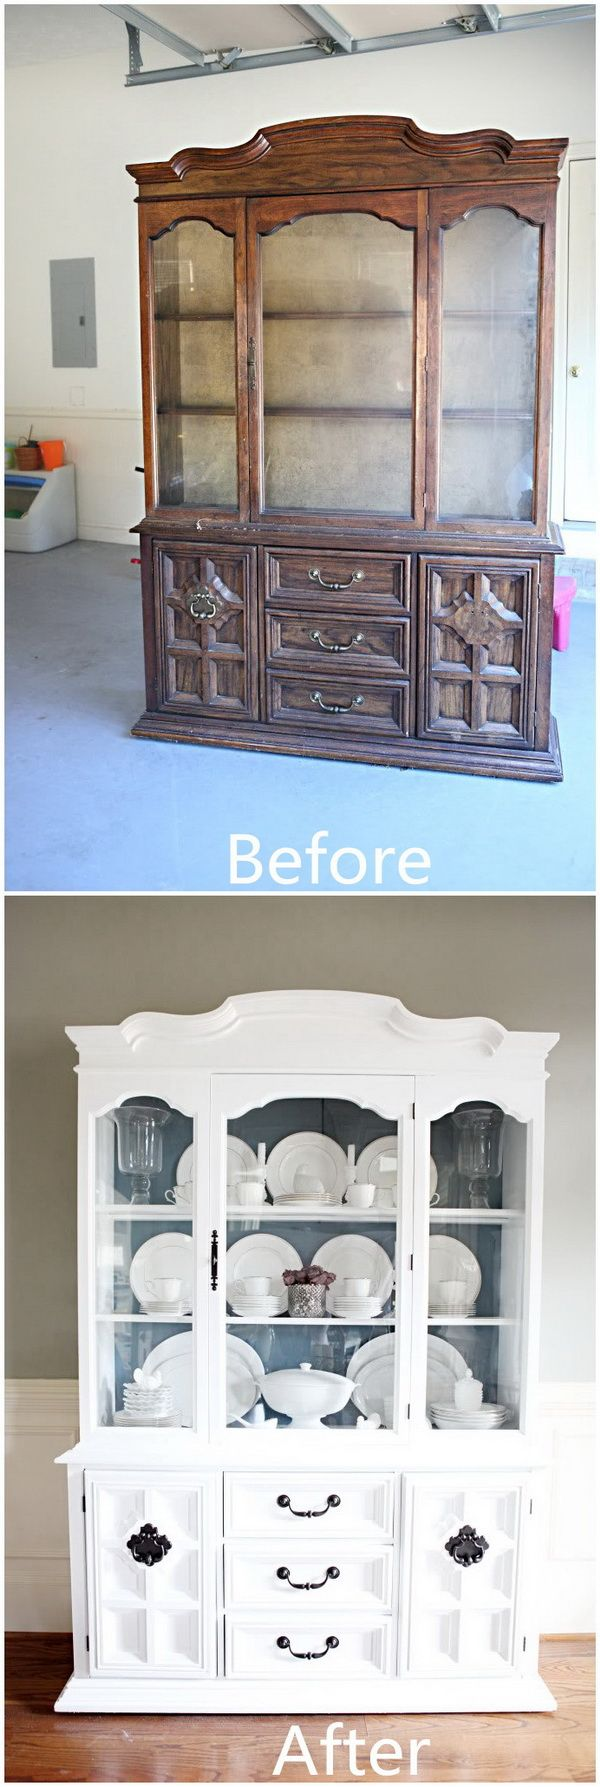 diy furniture makeover ideas. best of before u0026 after furniture makeovers creative diy ways to repurpose your old diy makeover ideas